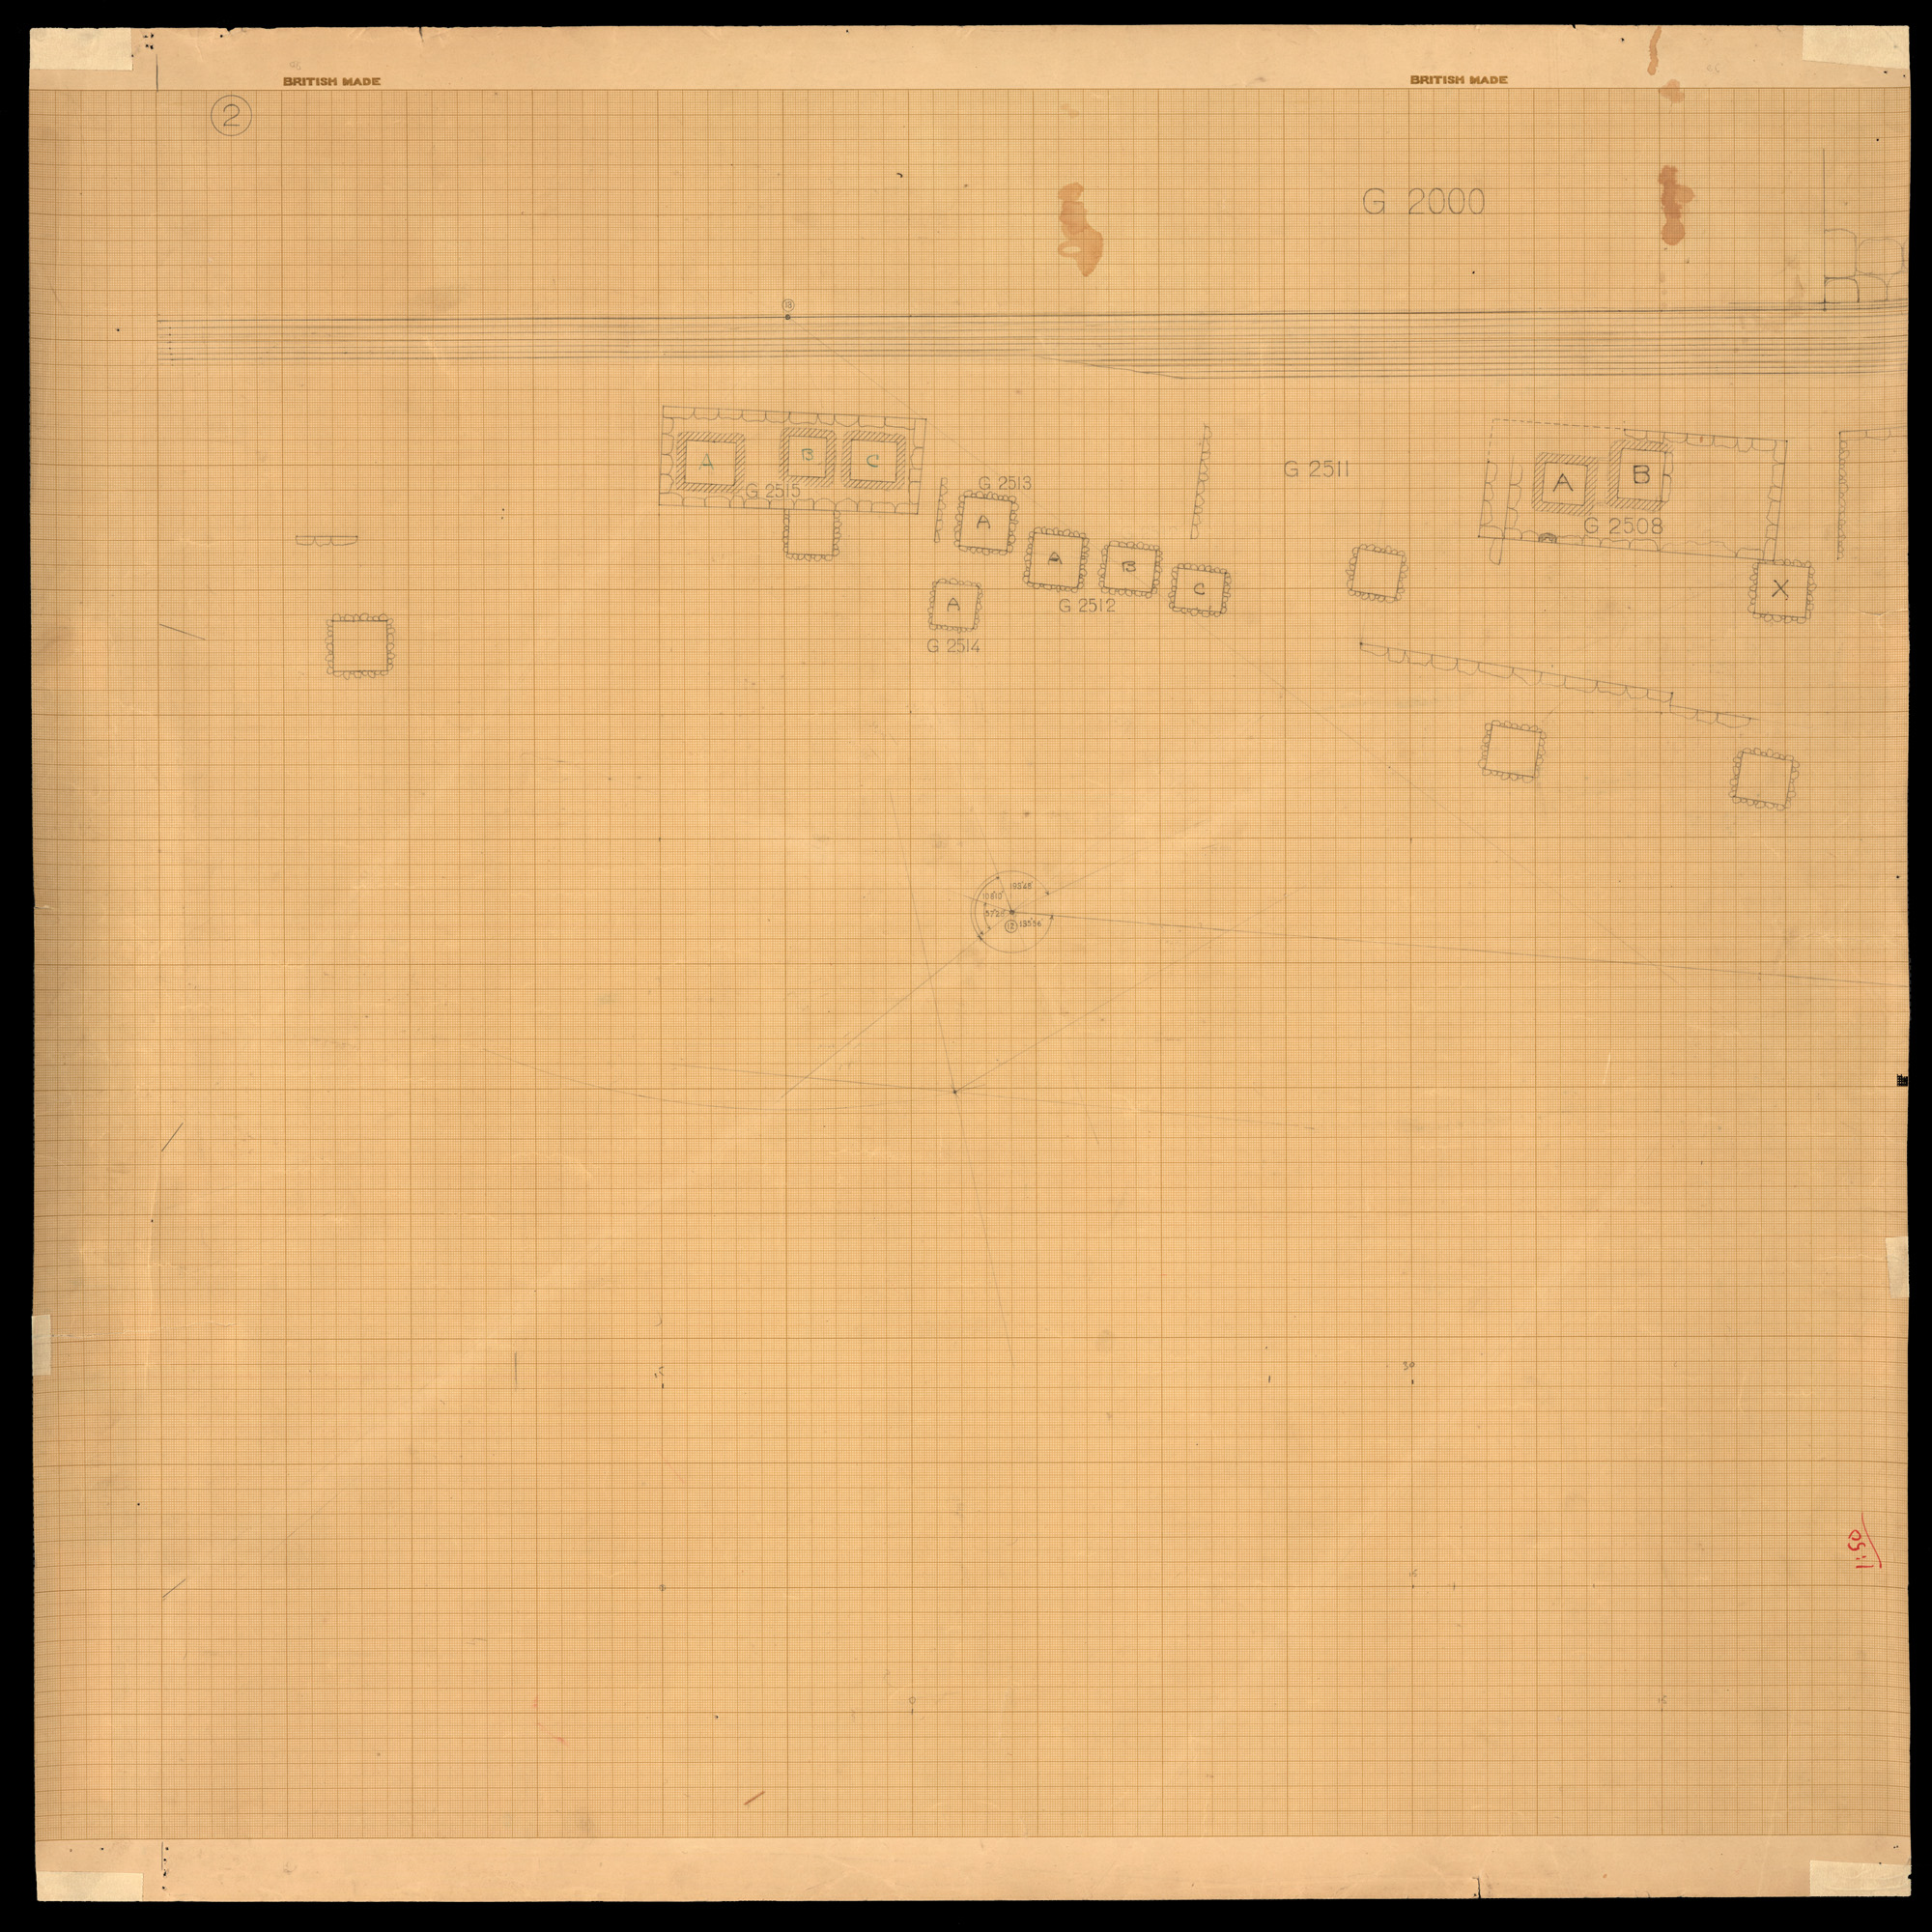 Maps and plans: Plan of cemetery G 2500